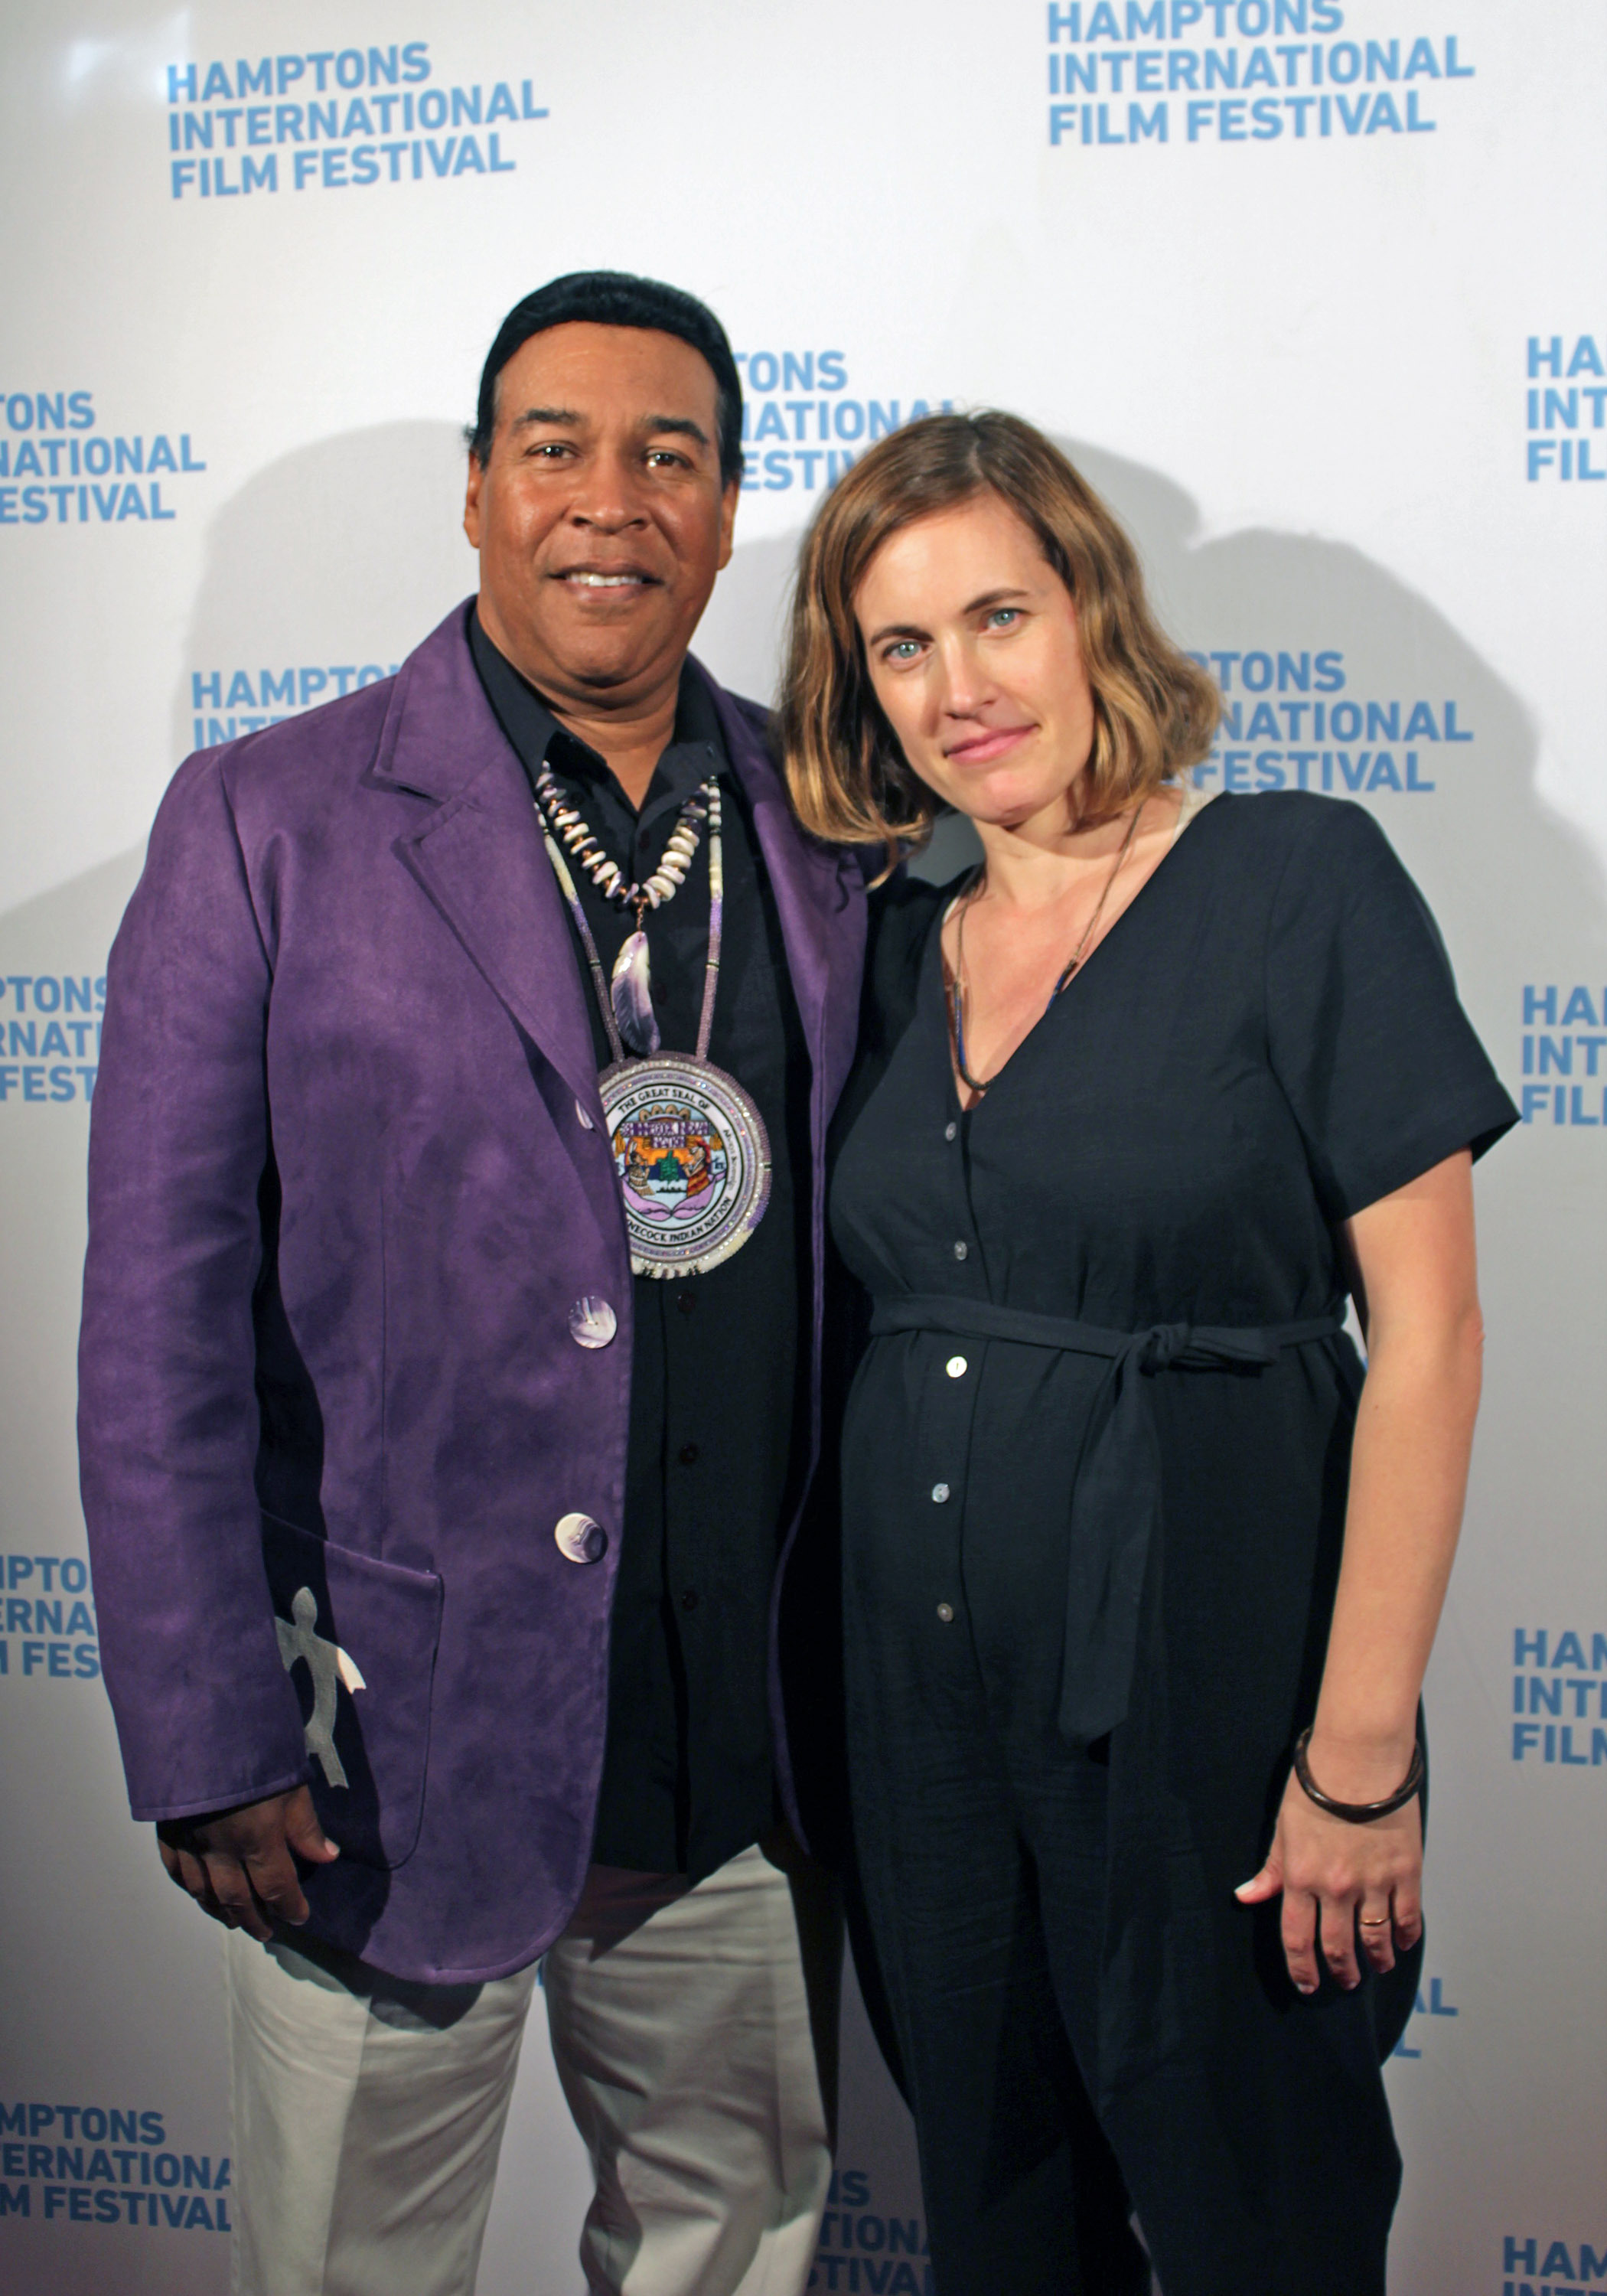 Shinnecock Nation member Lance Gumbs and filmmaker Treva Wurmfeld at a screening of her film